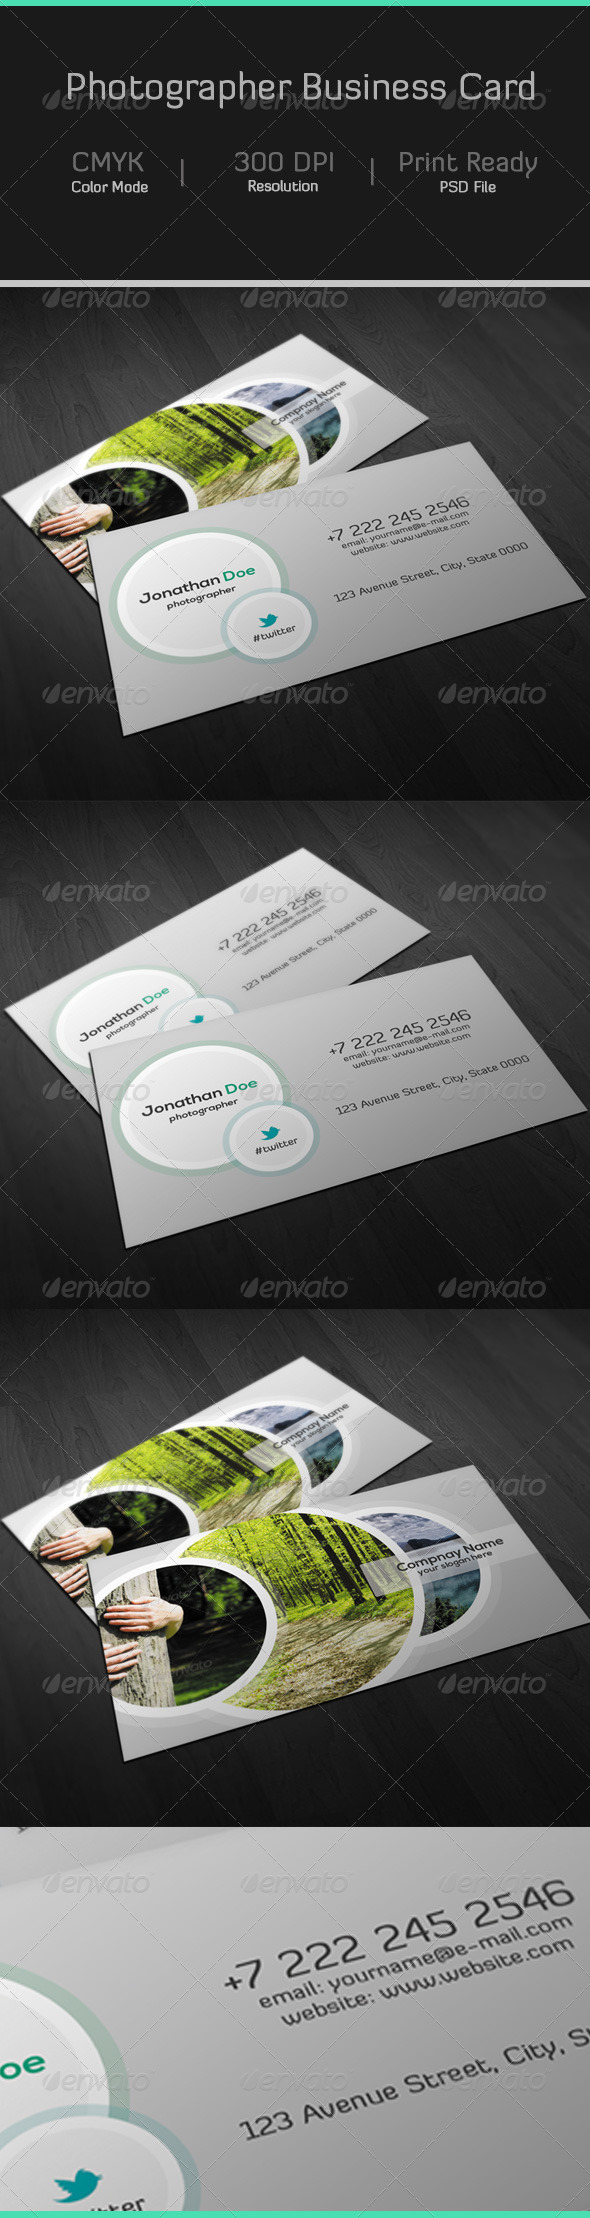 GraphicRiver Photographer Business Card 7191806